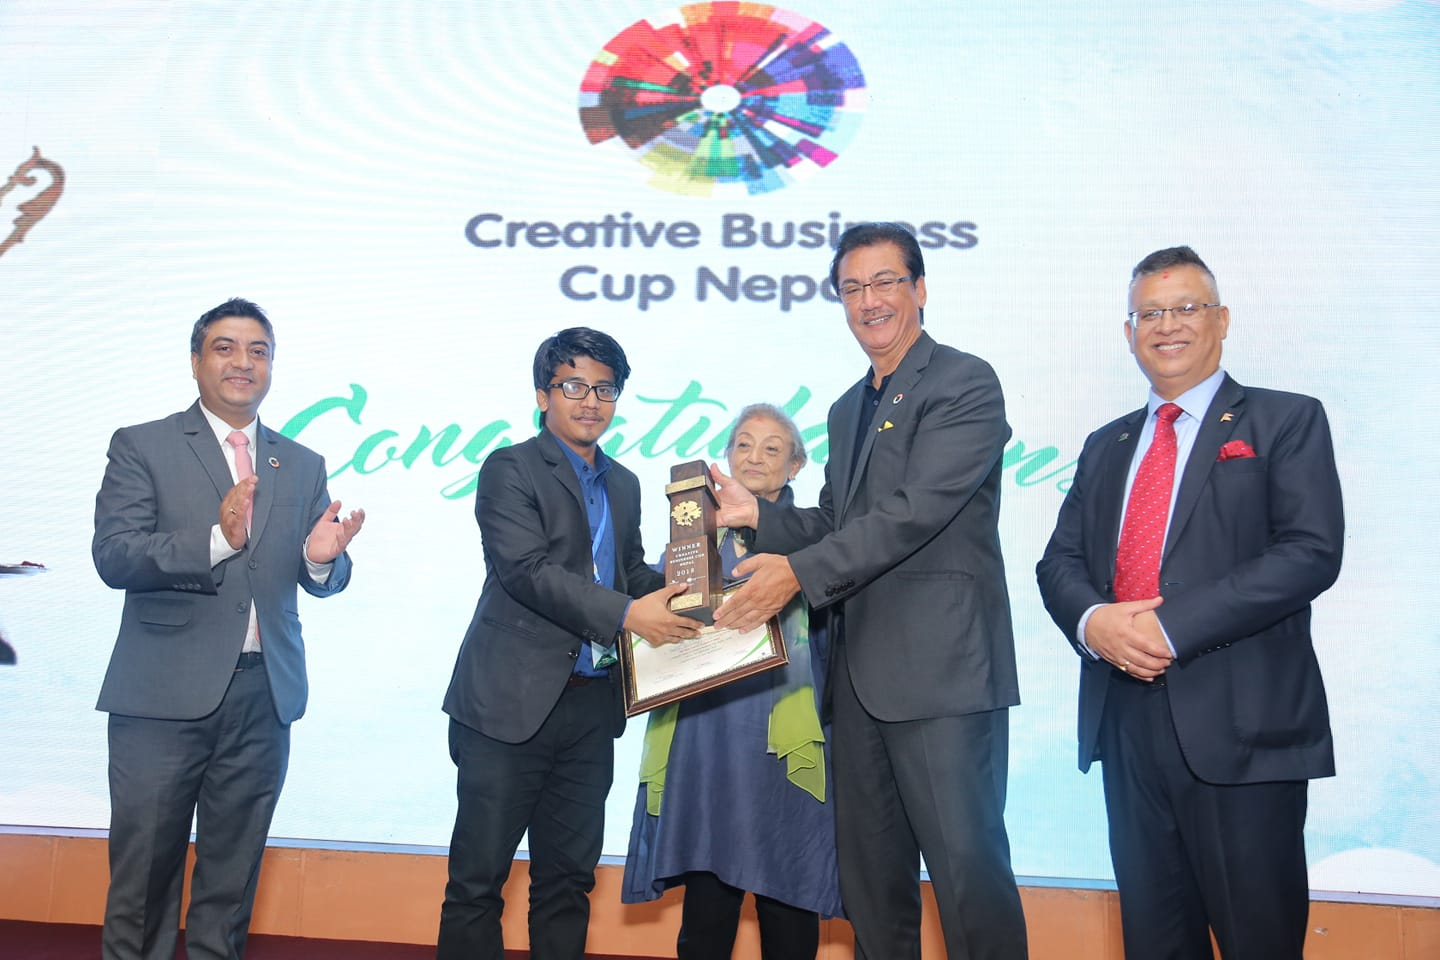 Creative Business Cup -Nepal